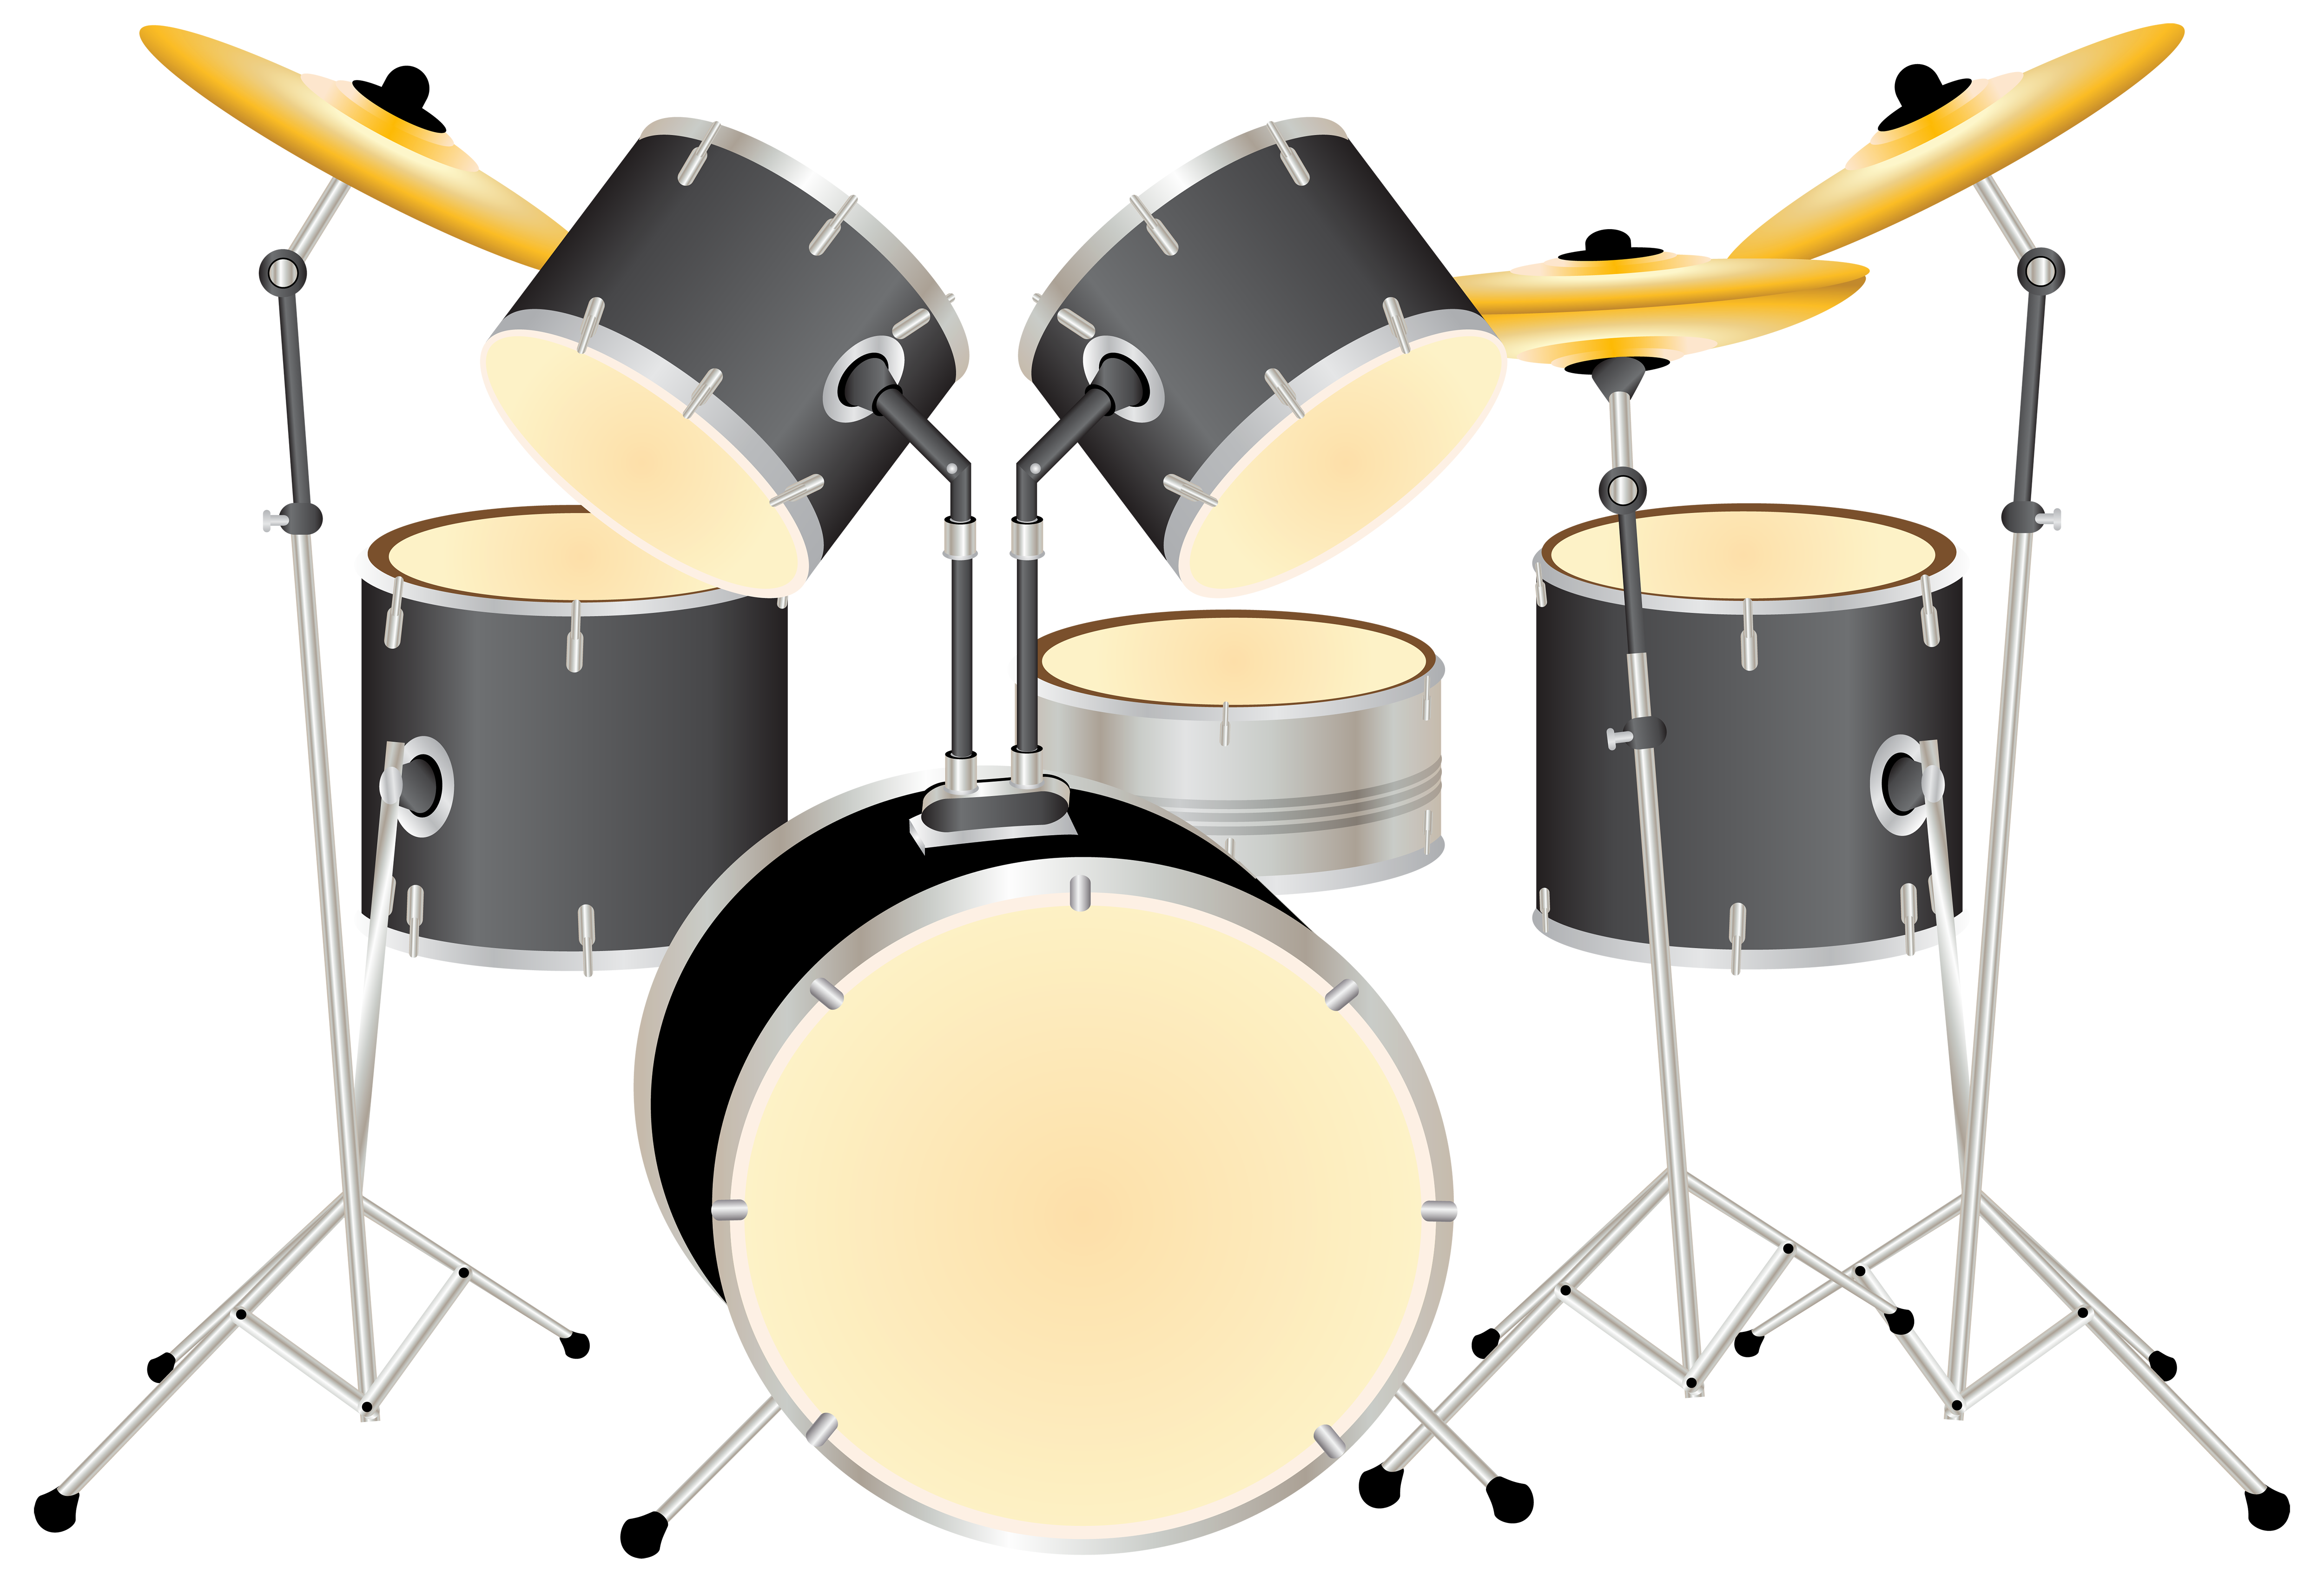 drum kit clipart png and cliparts for download clipart collection #30113